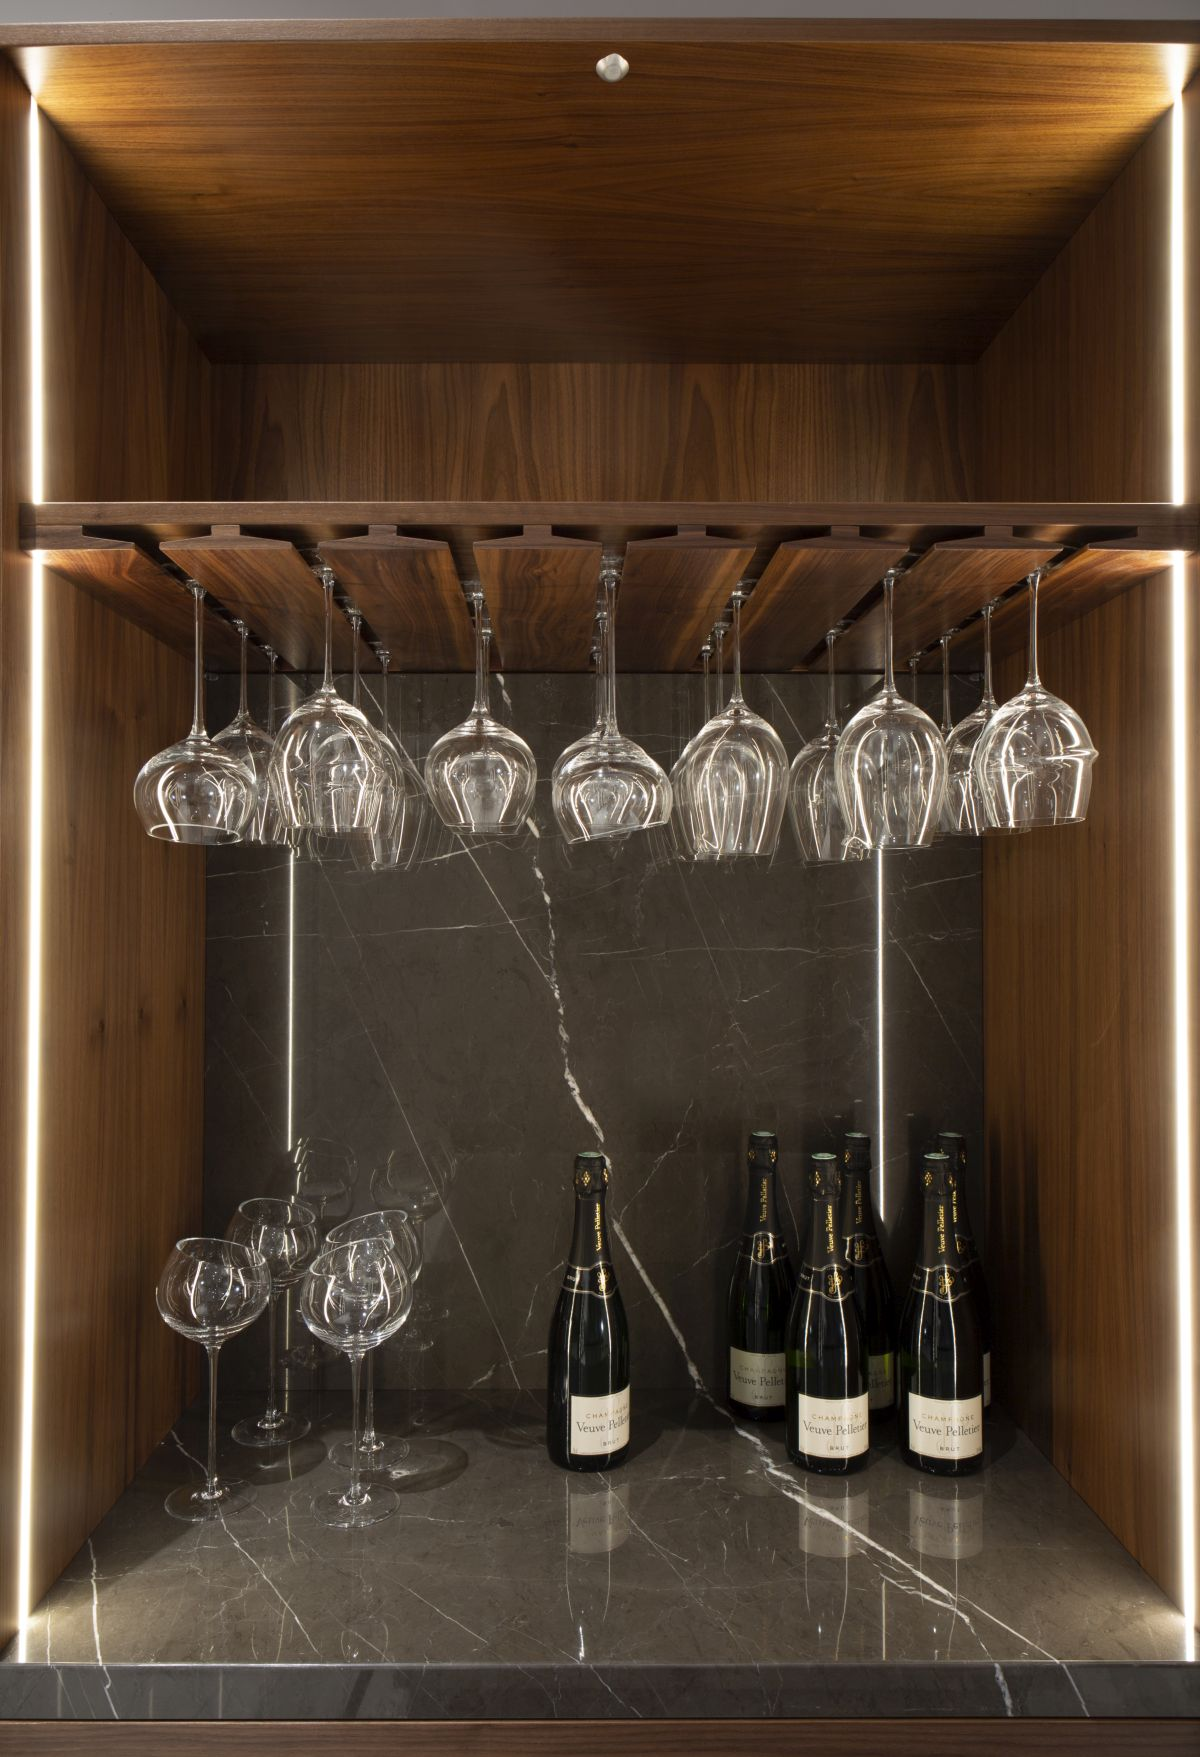 An elegant glass holding rack is seamlessly integrated into the bar unit, adding function without complicating the aesthetic